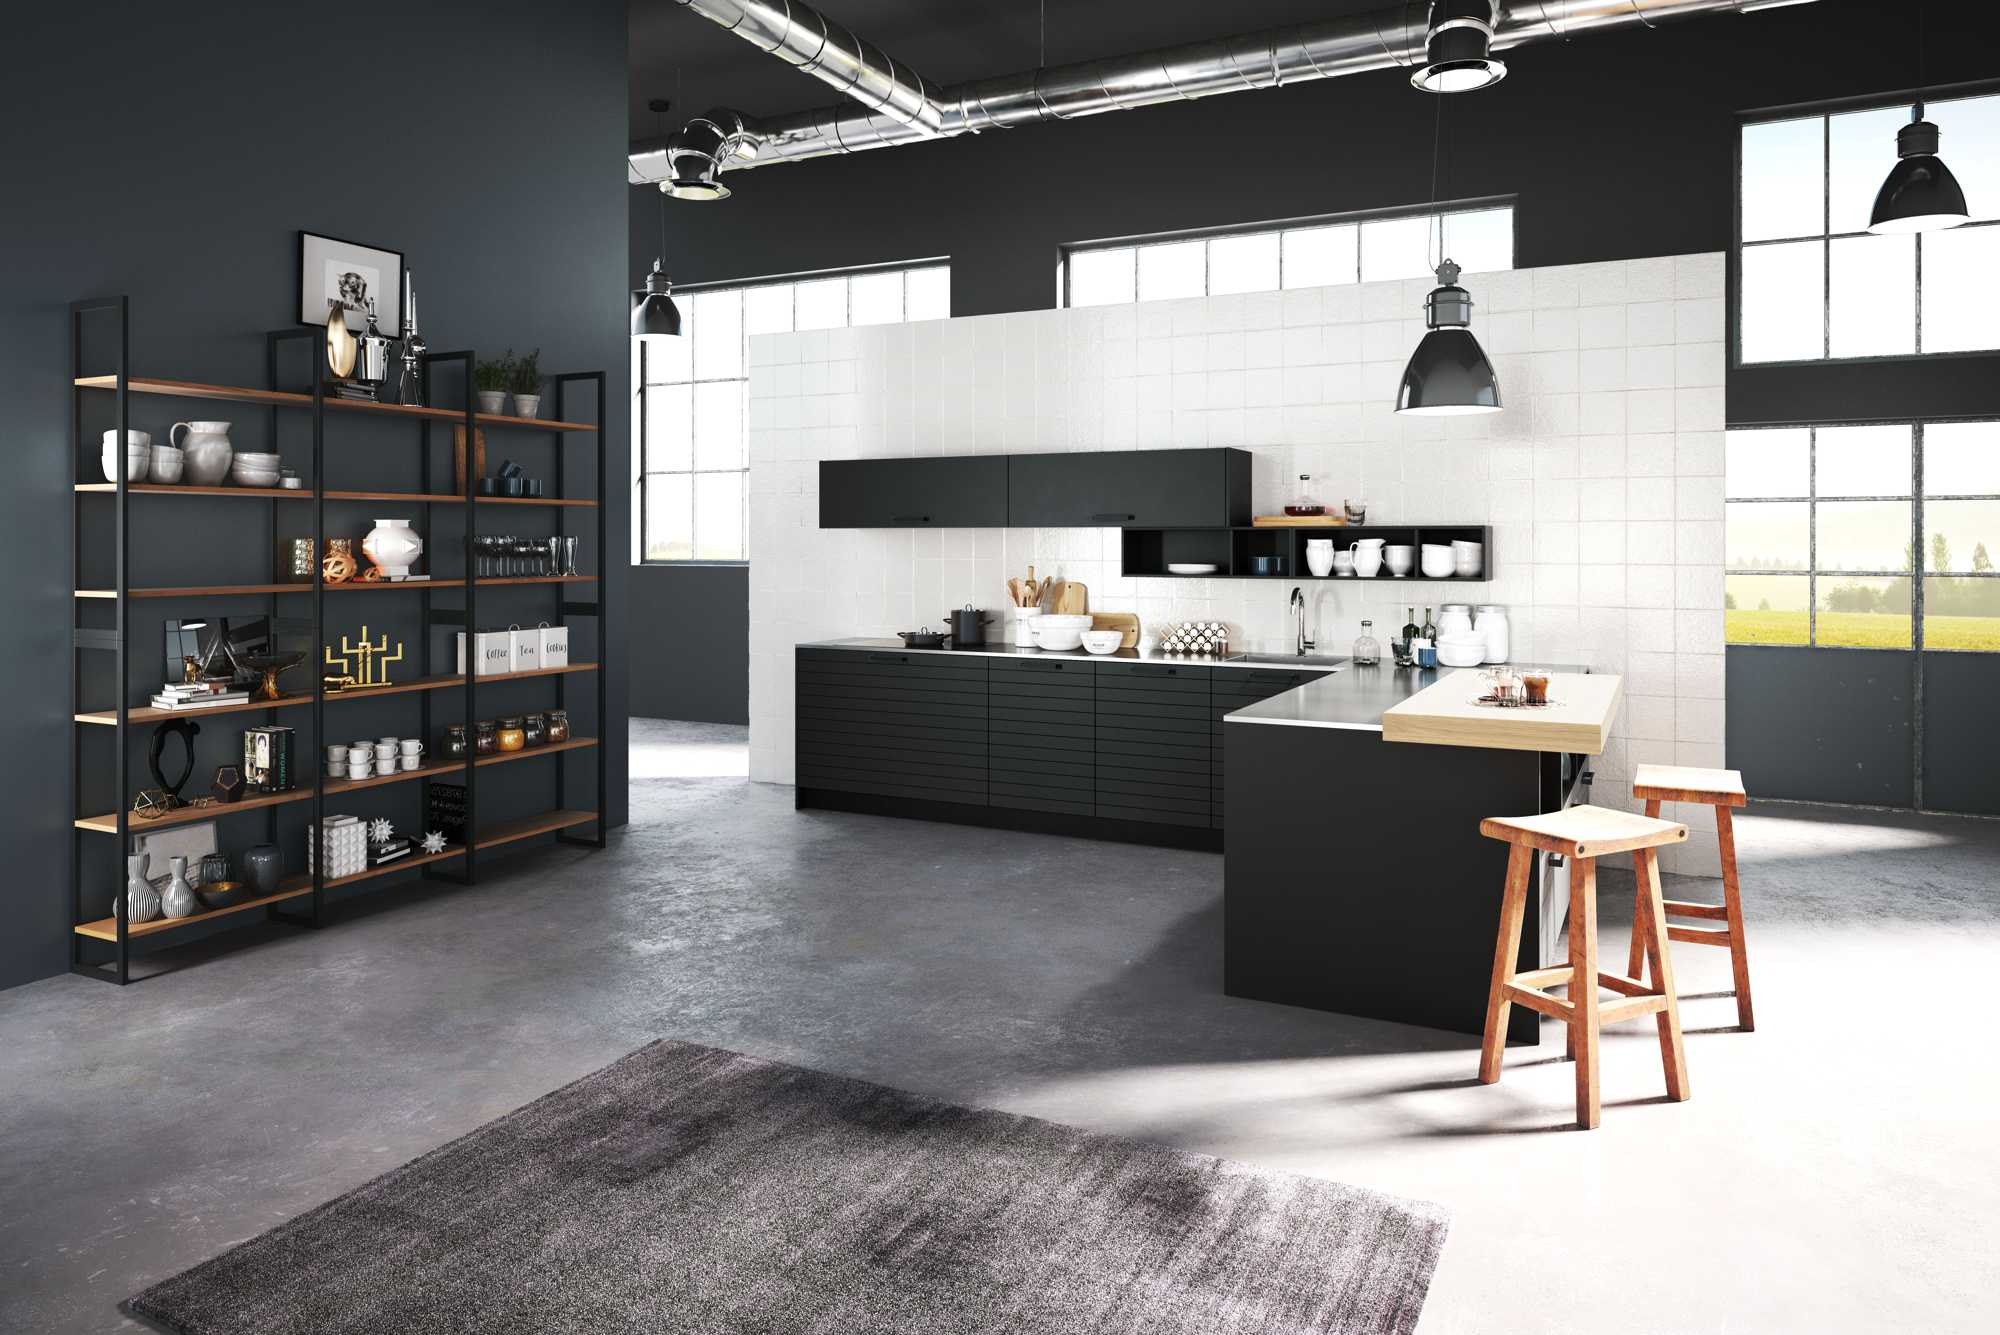 Black in combination with a wooden breakfast bar on the peninsula. ZeroxCarbon and Horizon Black